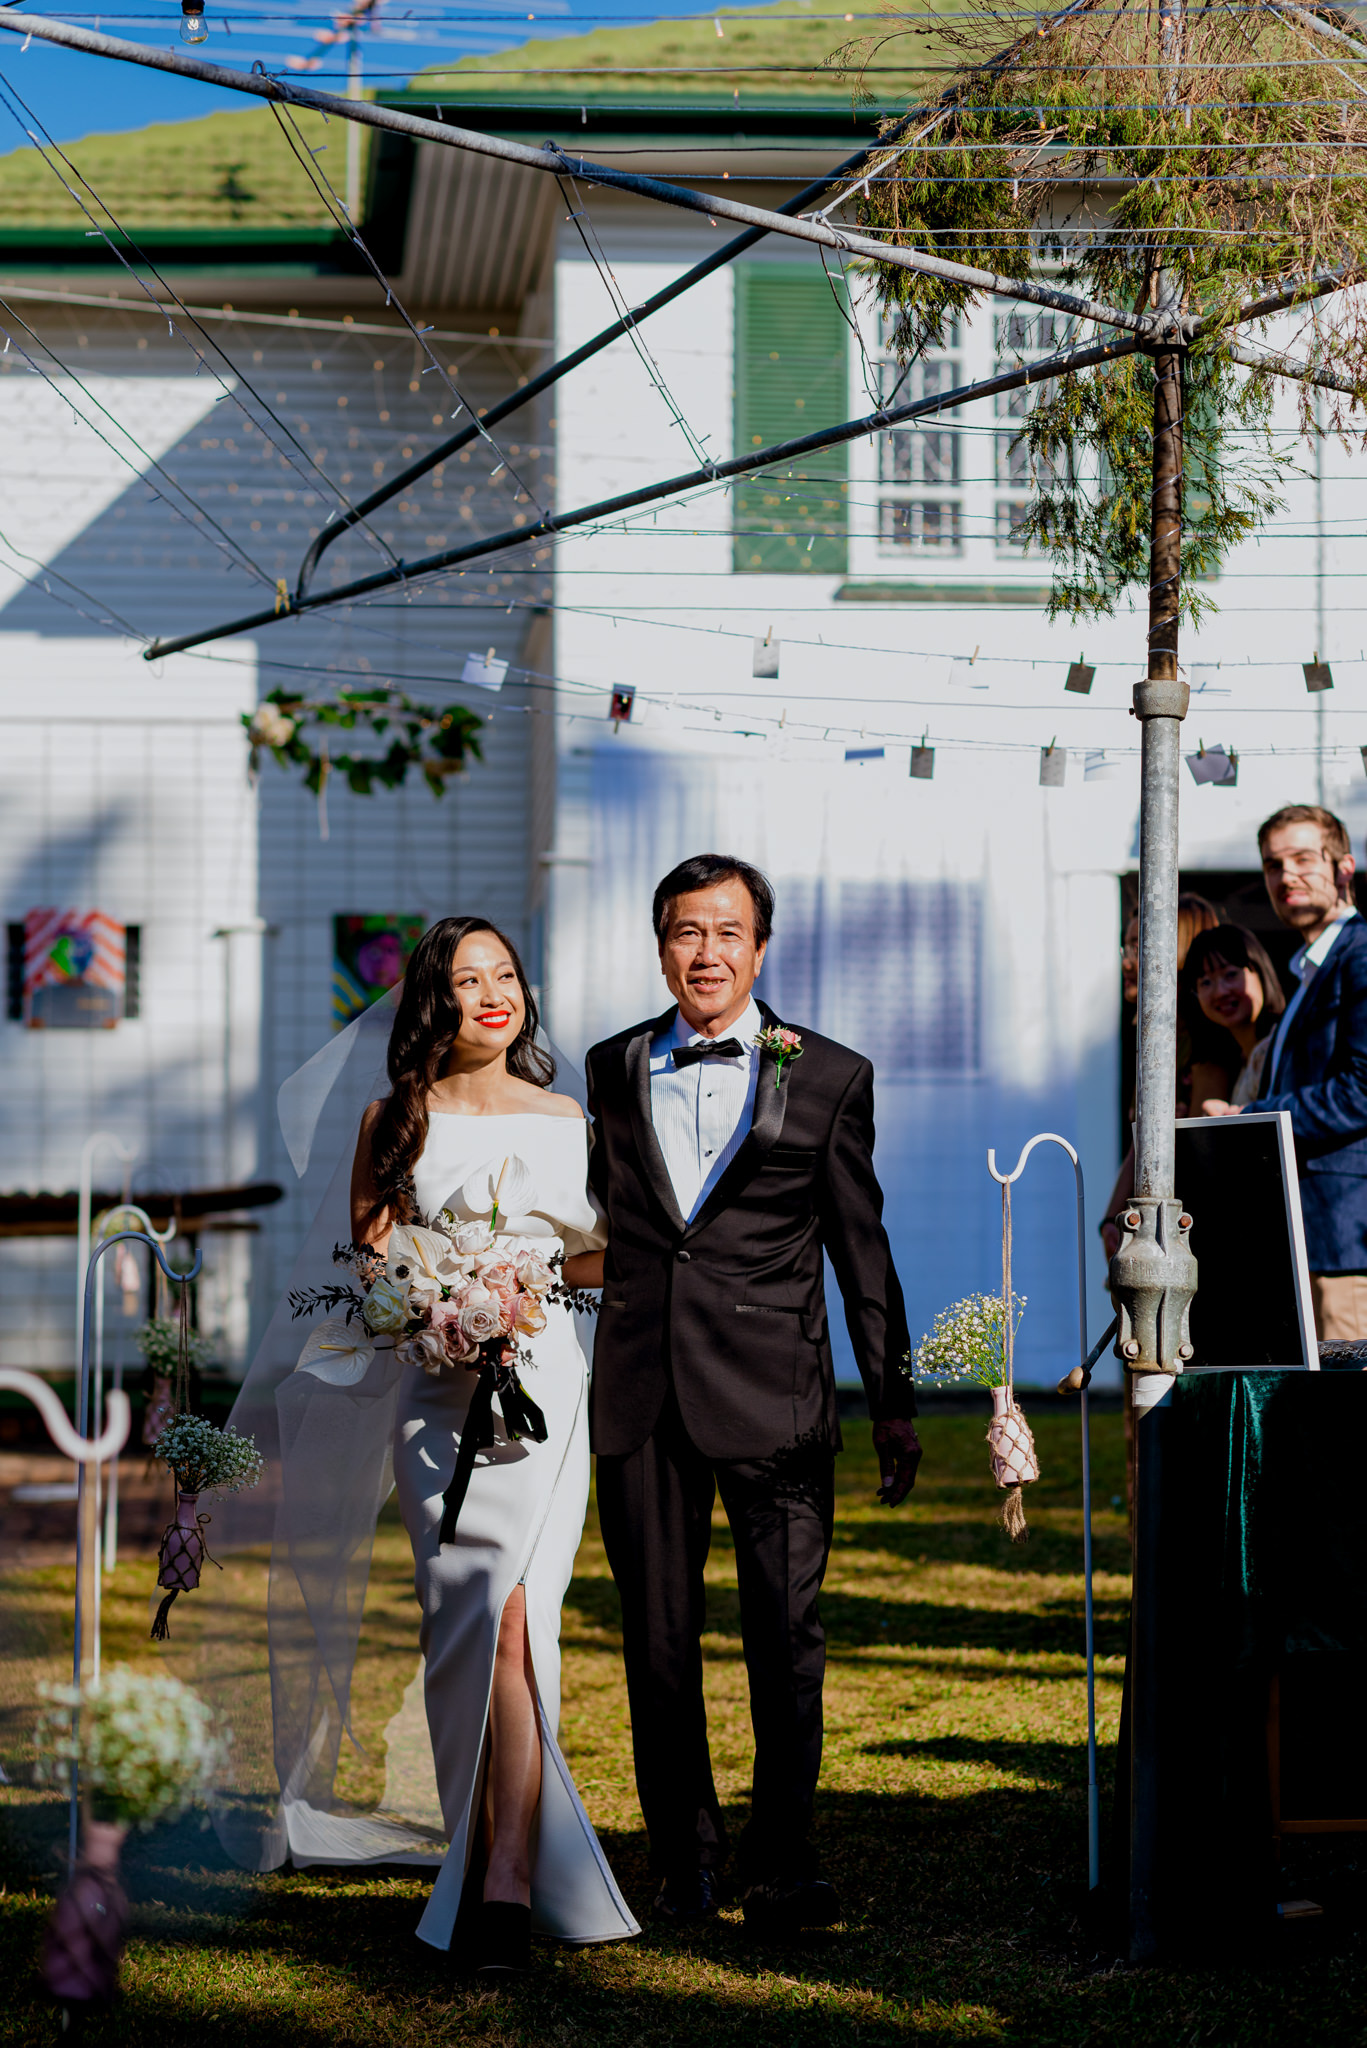 Asian father walks his daughter down the aisle in their backyard